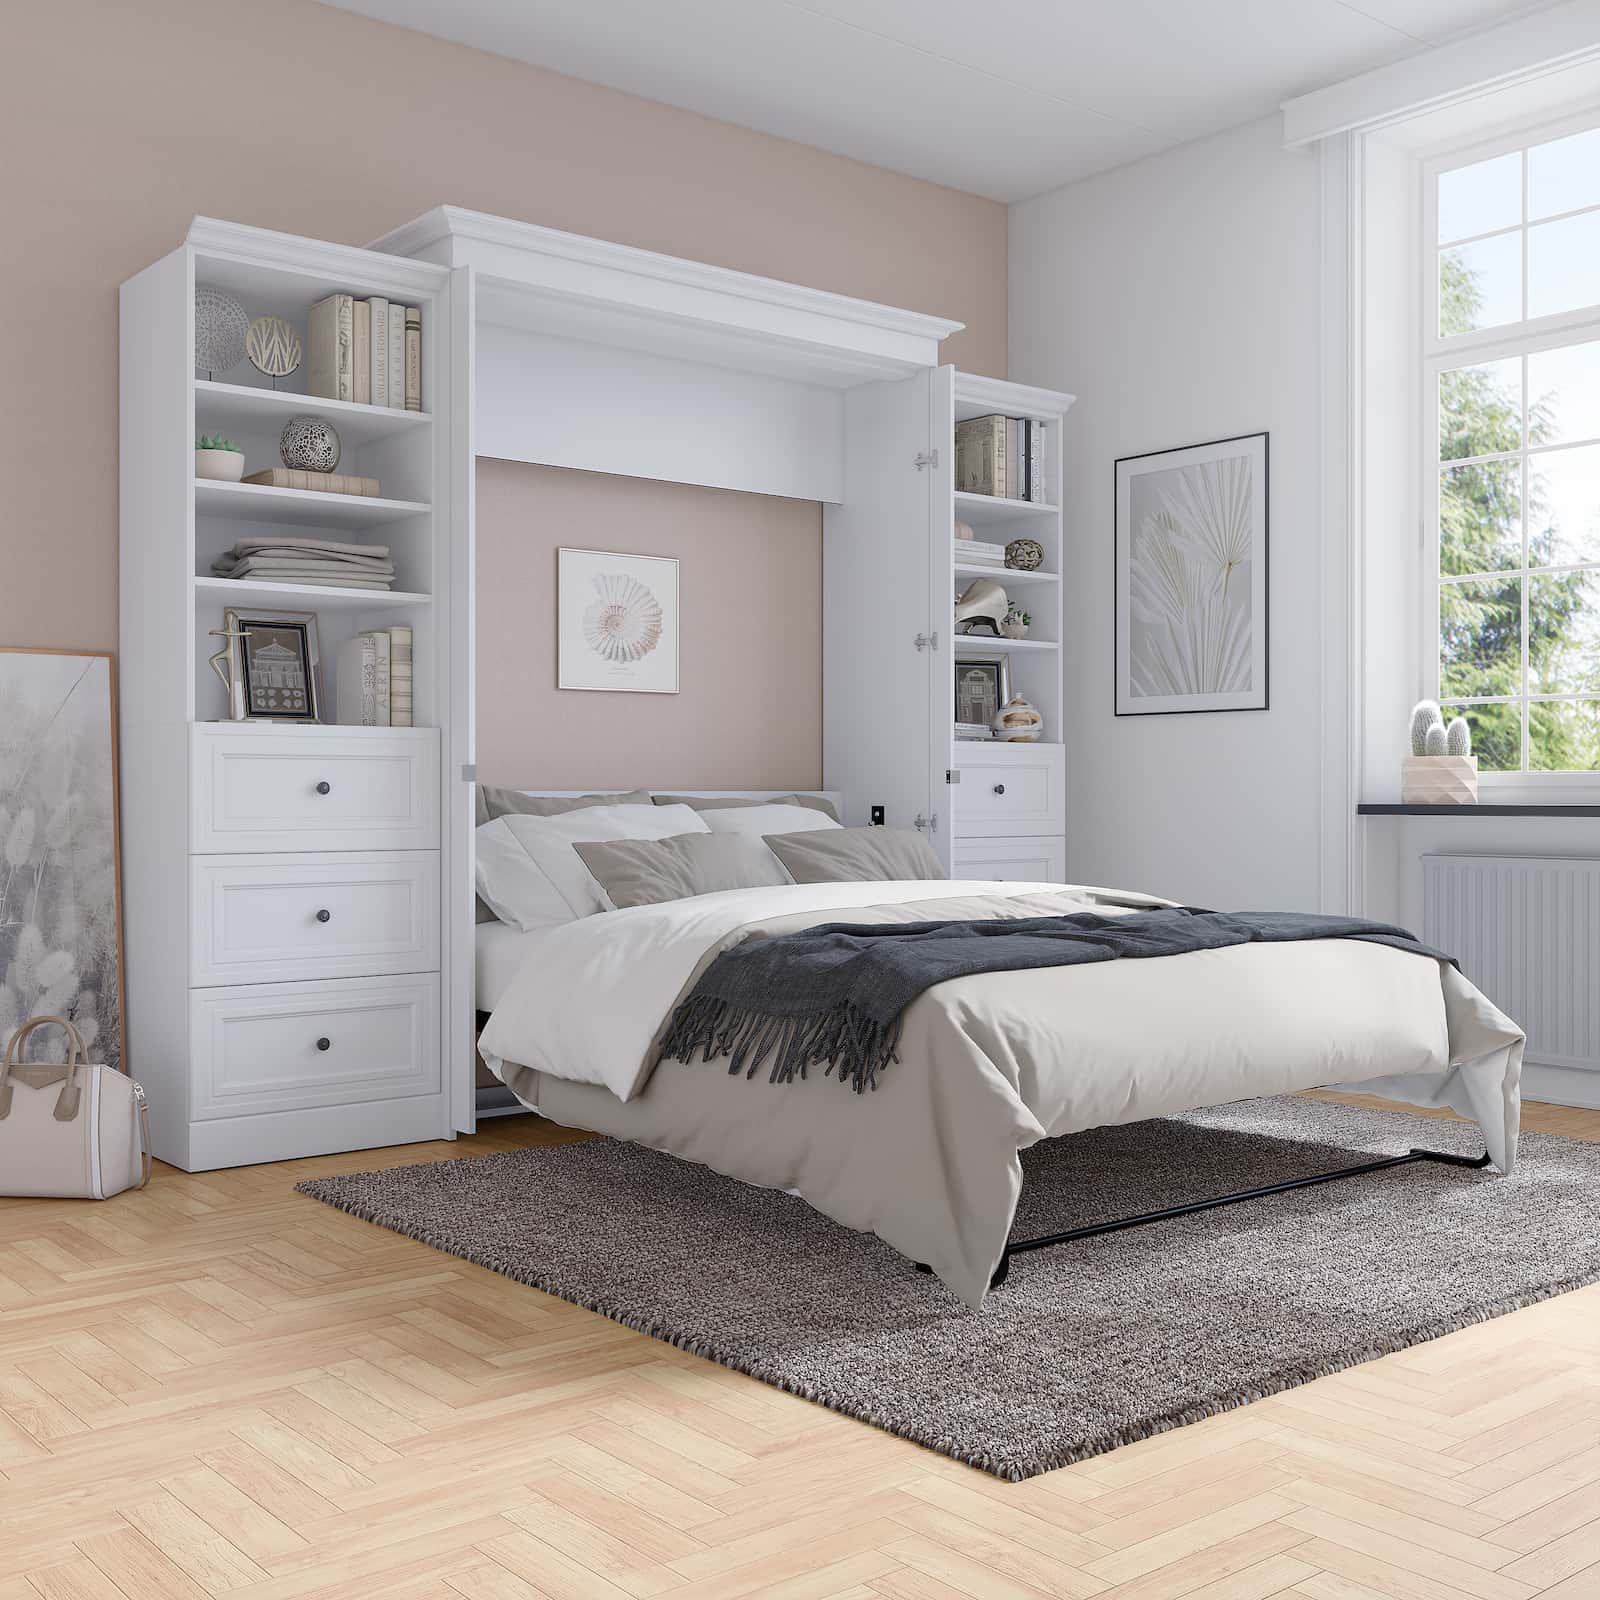 How to Maximize Space in a Small Bedroom – A Queen Murphy Bed, Mirrors, and More